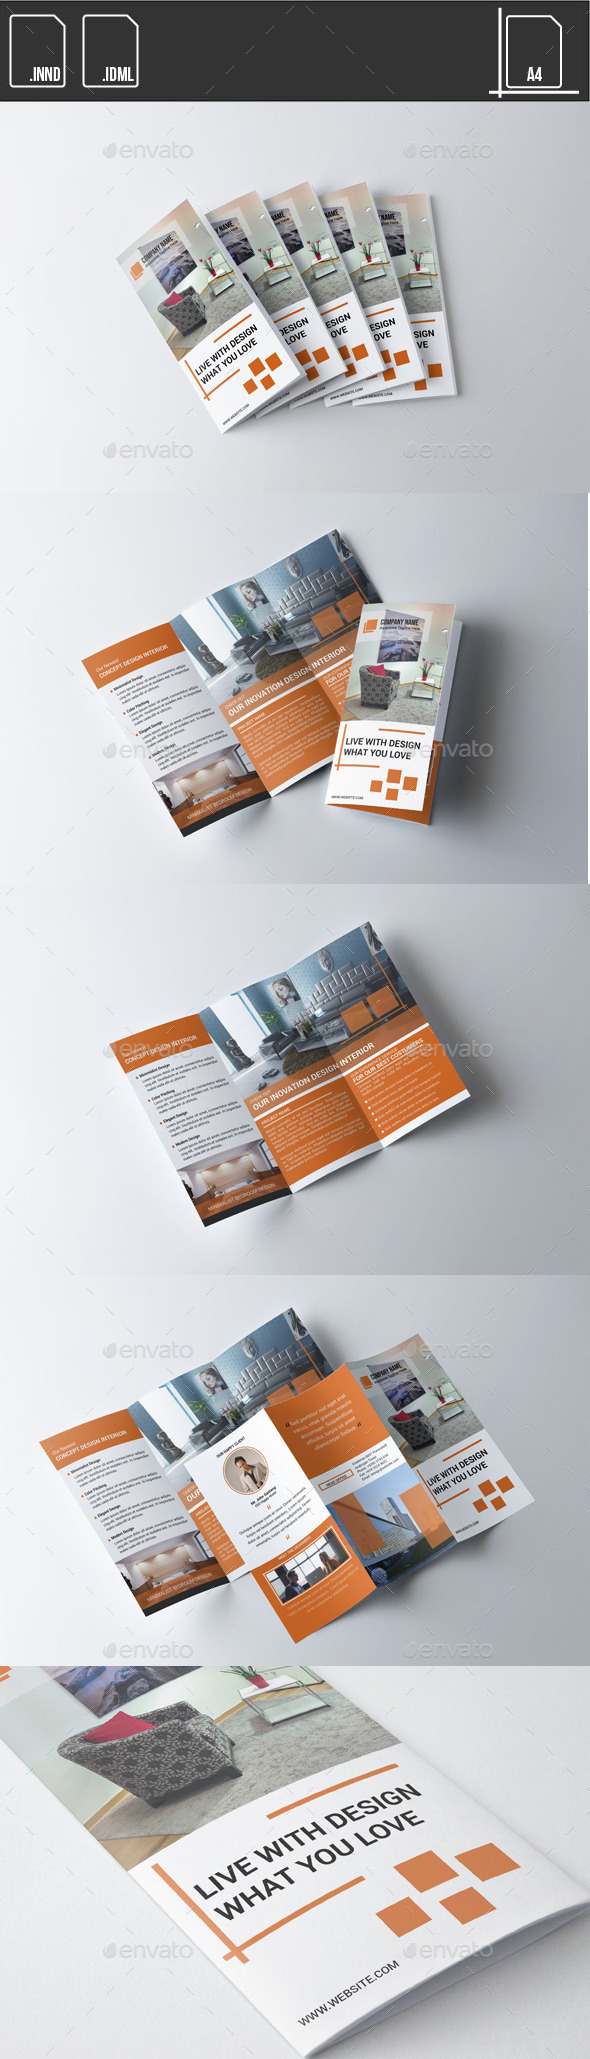 pin by stephani smith on brochures pinterest brochure design